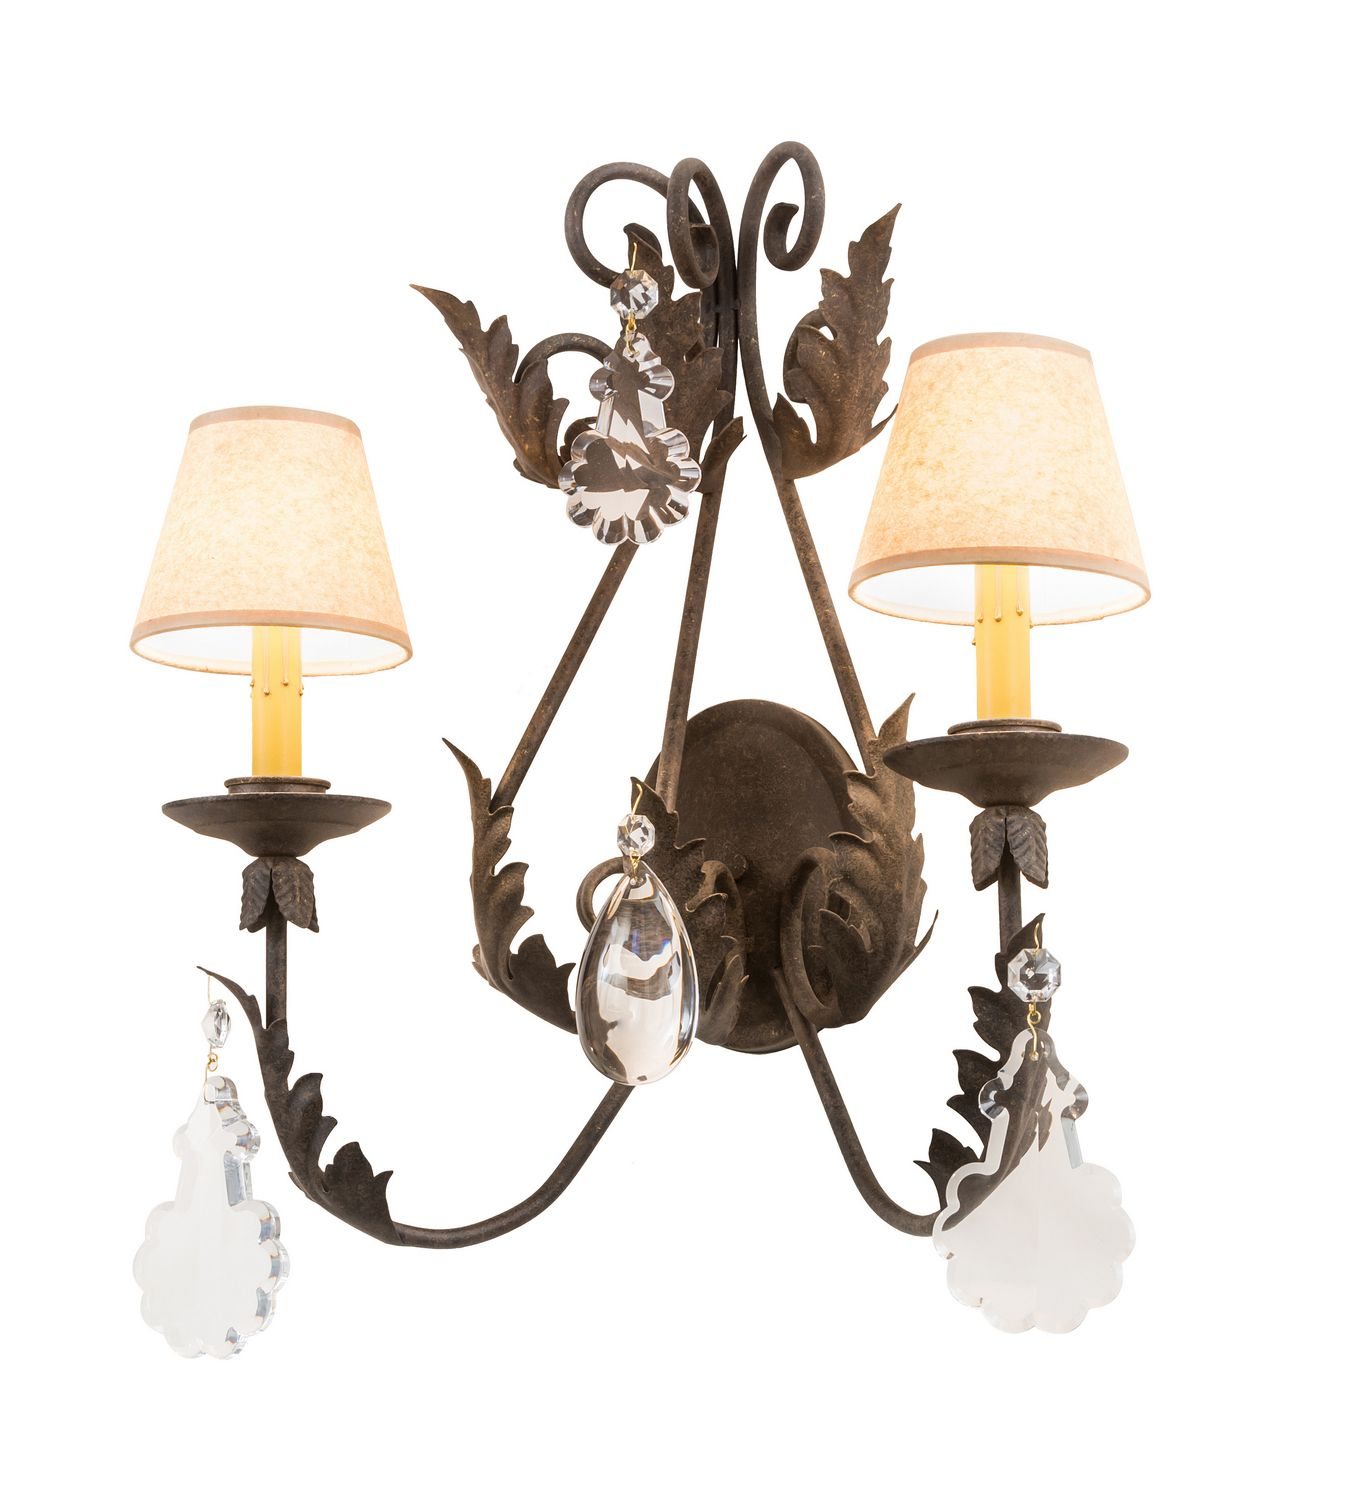 Two Light Wall Sconce In 2021 Wall Sconces Wall Sconce Lighting Wall Lights